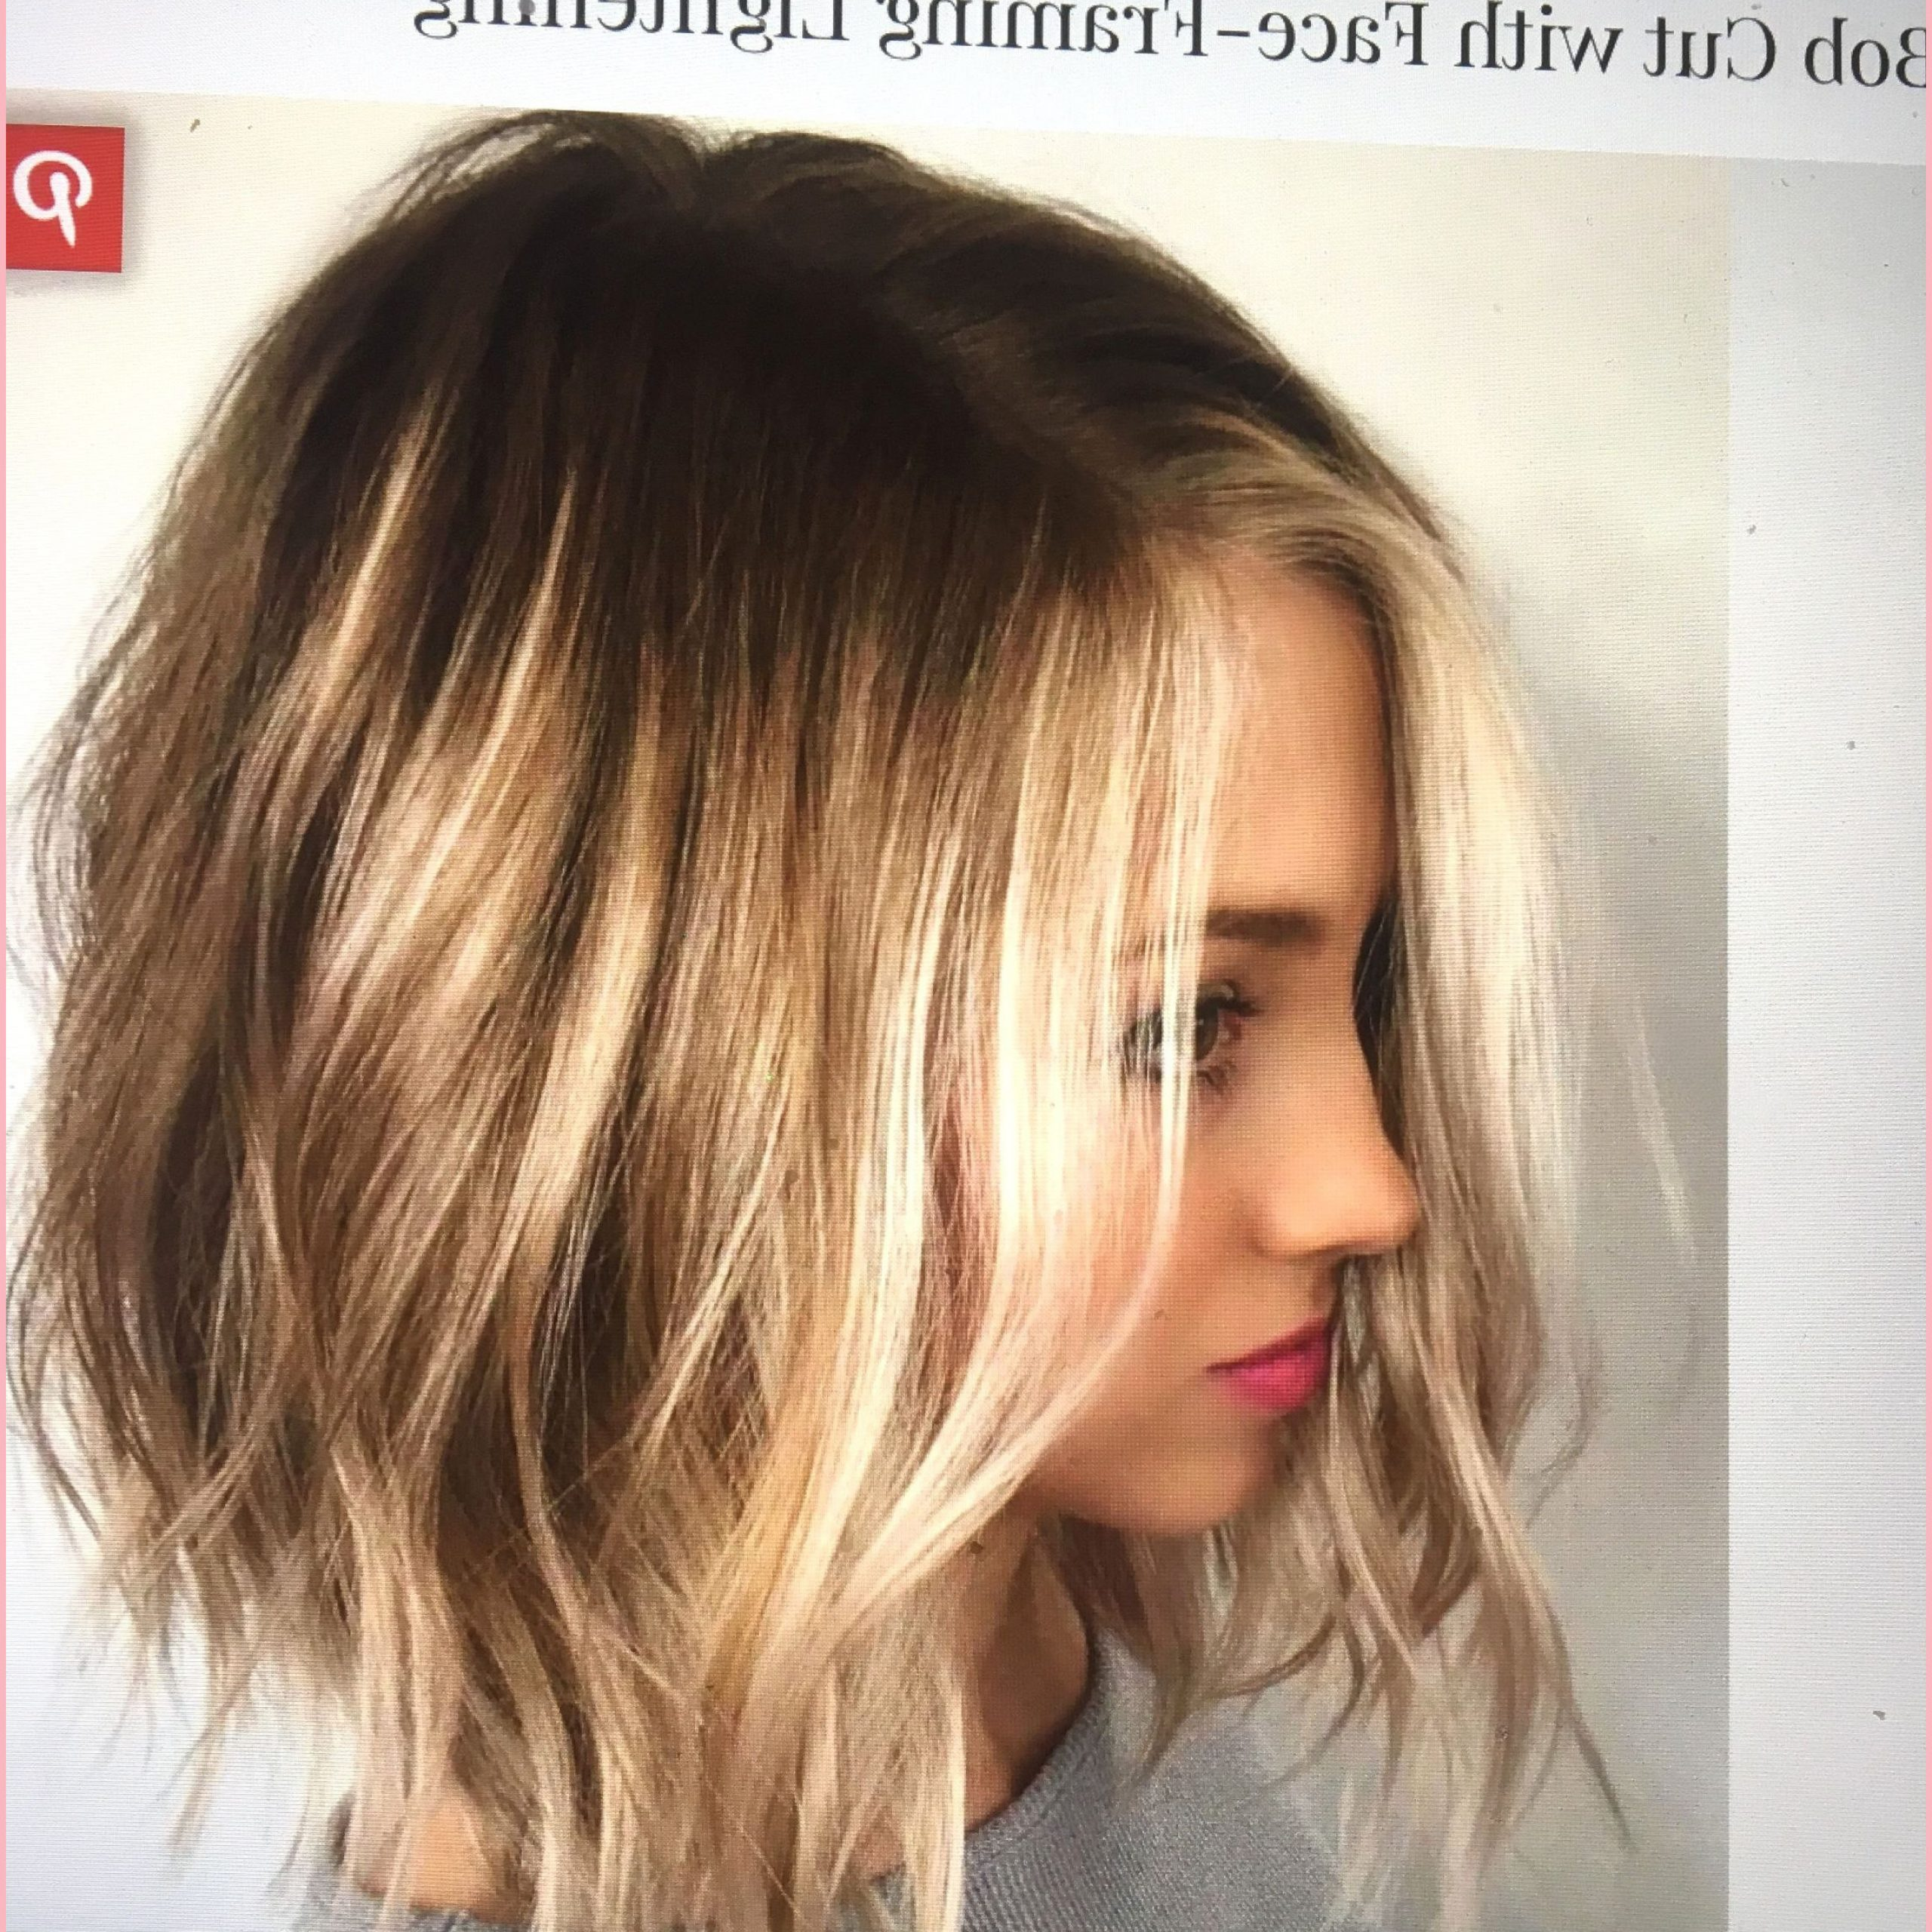 Most Recent Mid Length Layered Ash Blonde Hairstyles Intended For Medium Length Blonde Hairstyles (View 10 of 20)